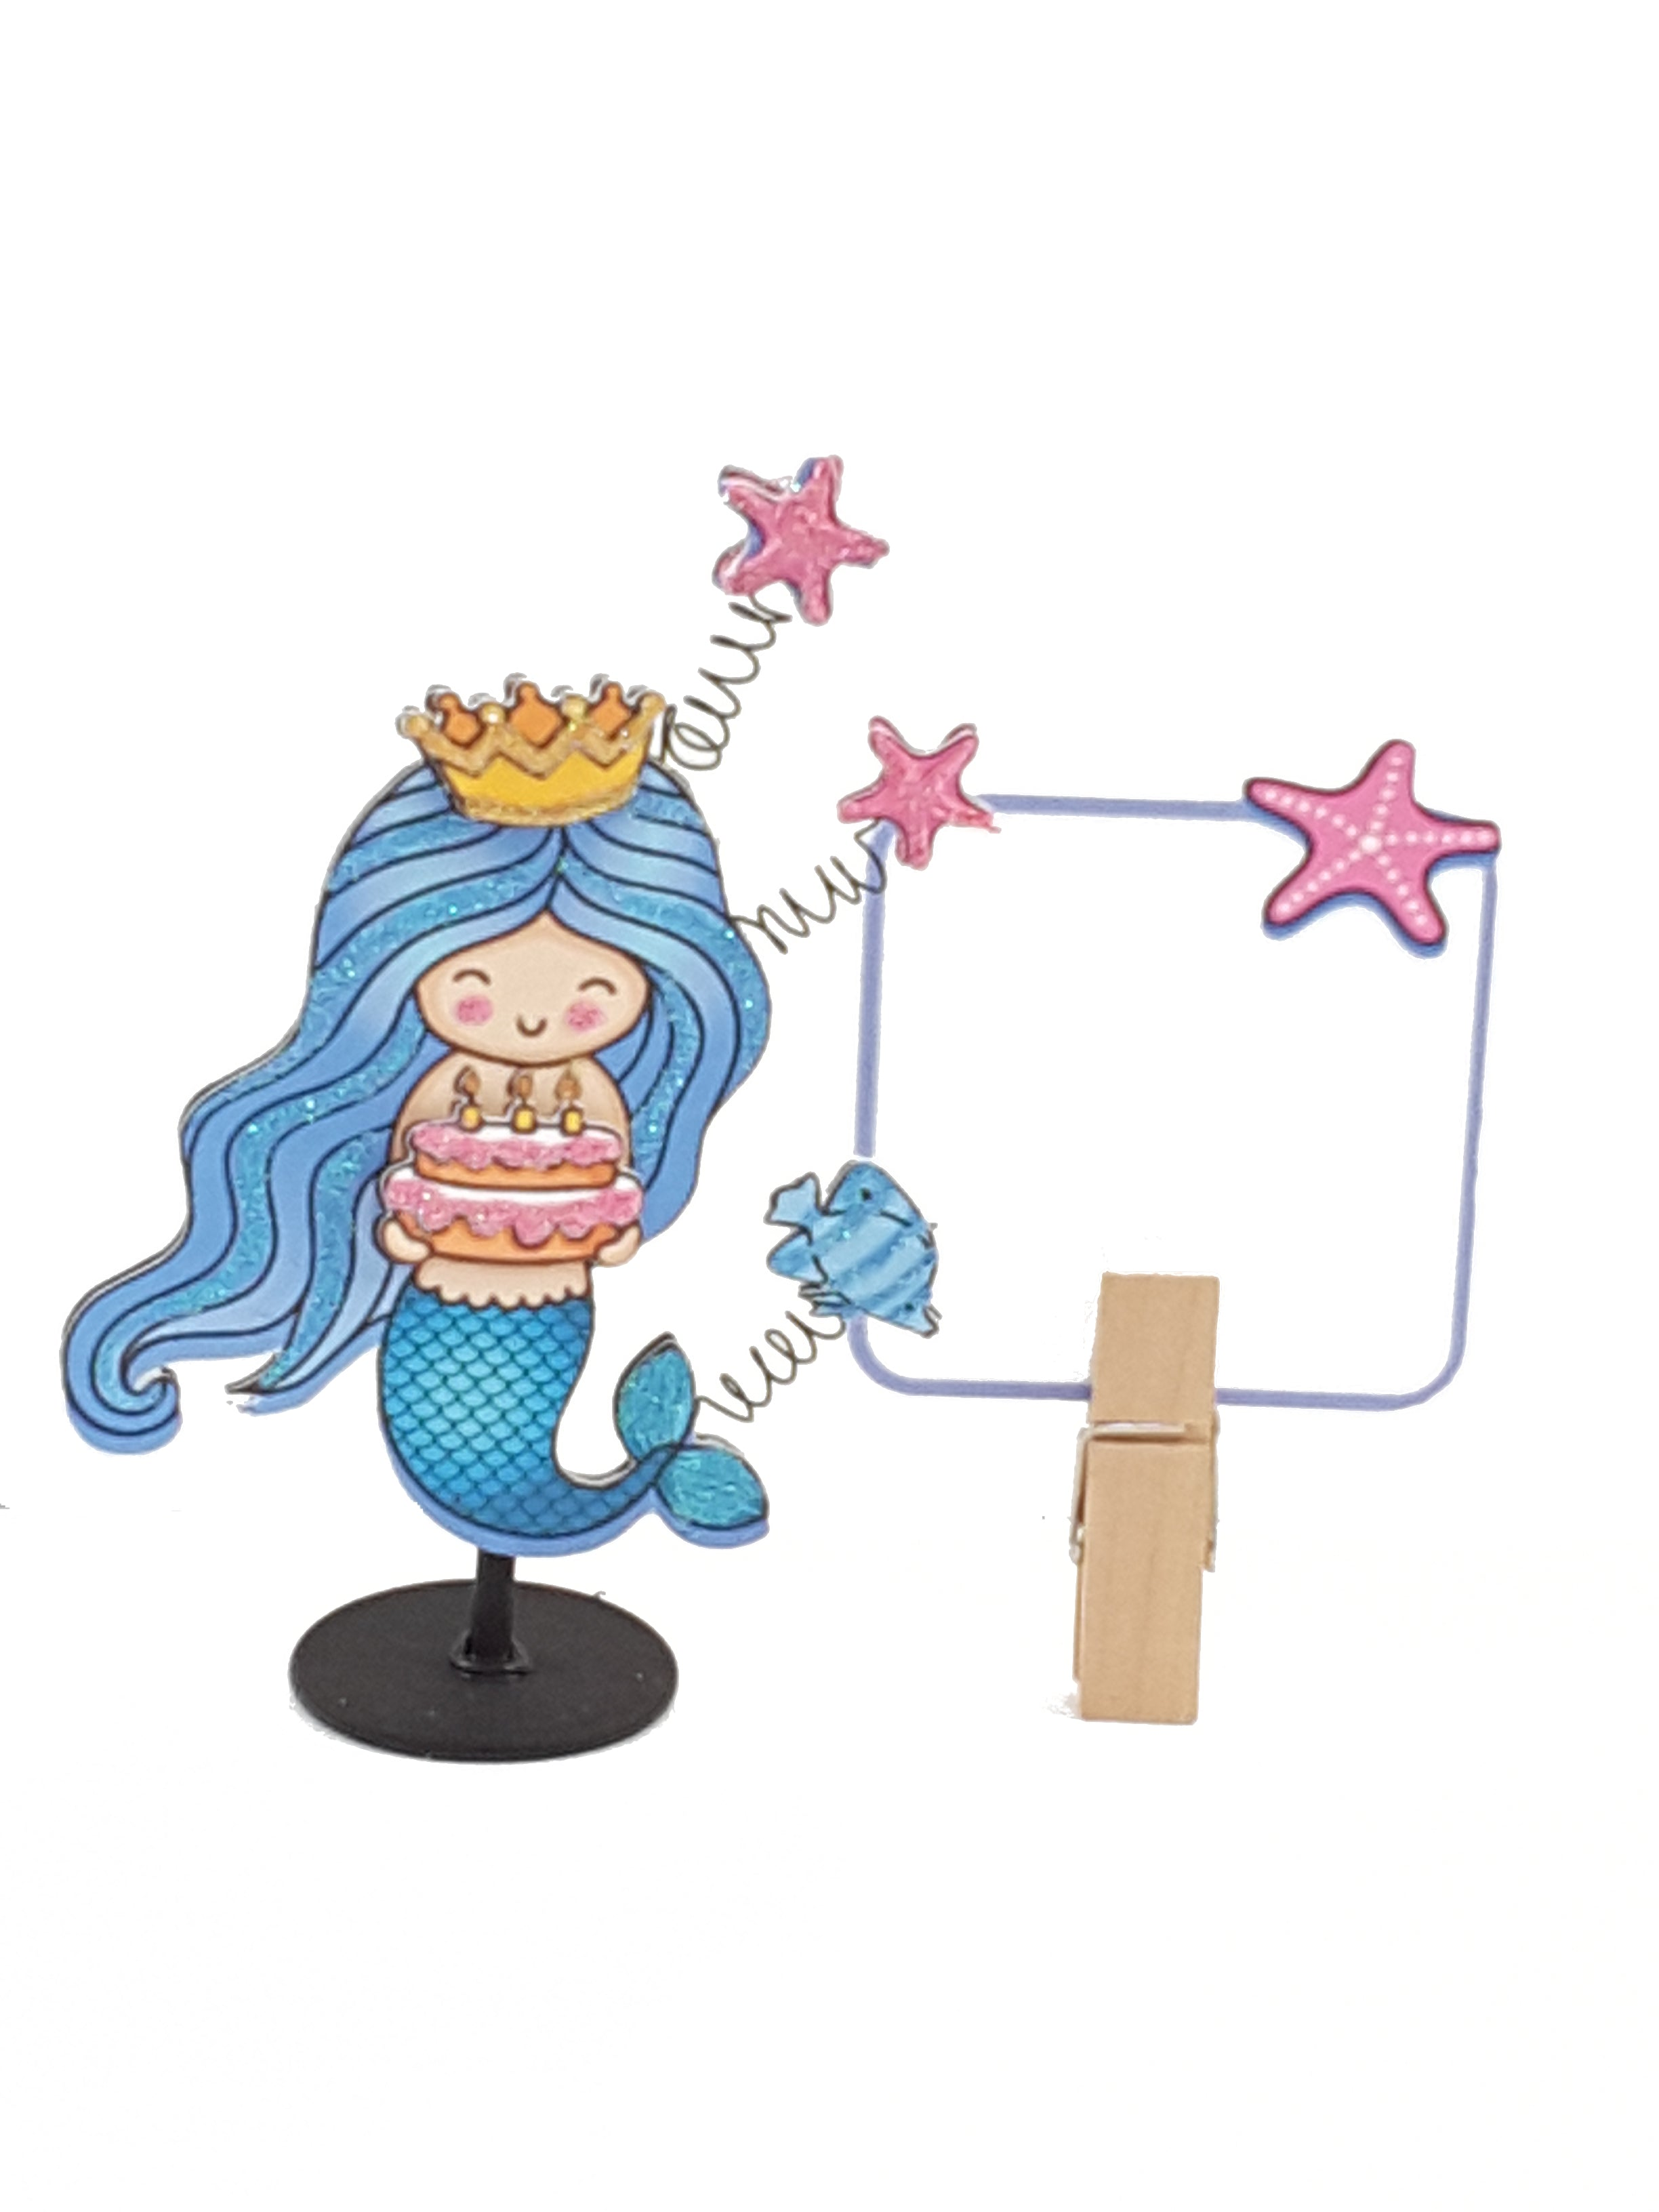 Personalized 3D Birthday mermaid card